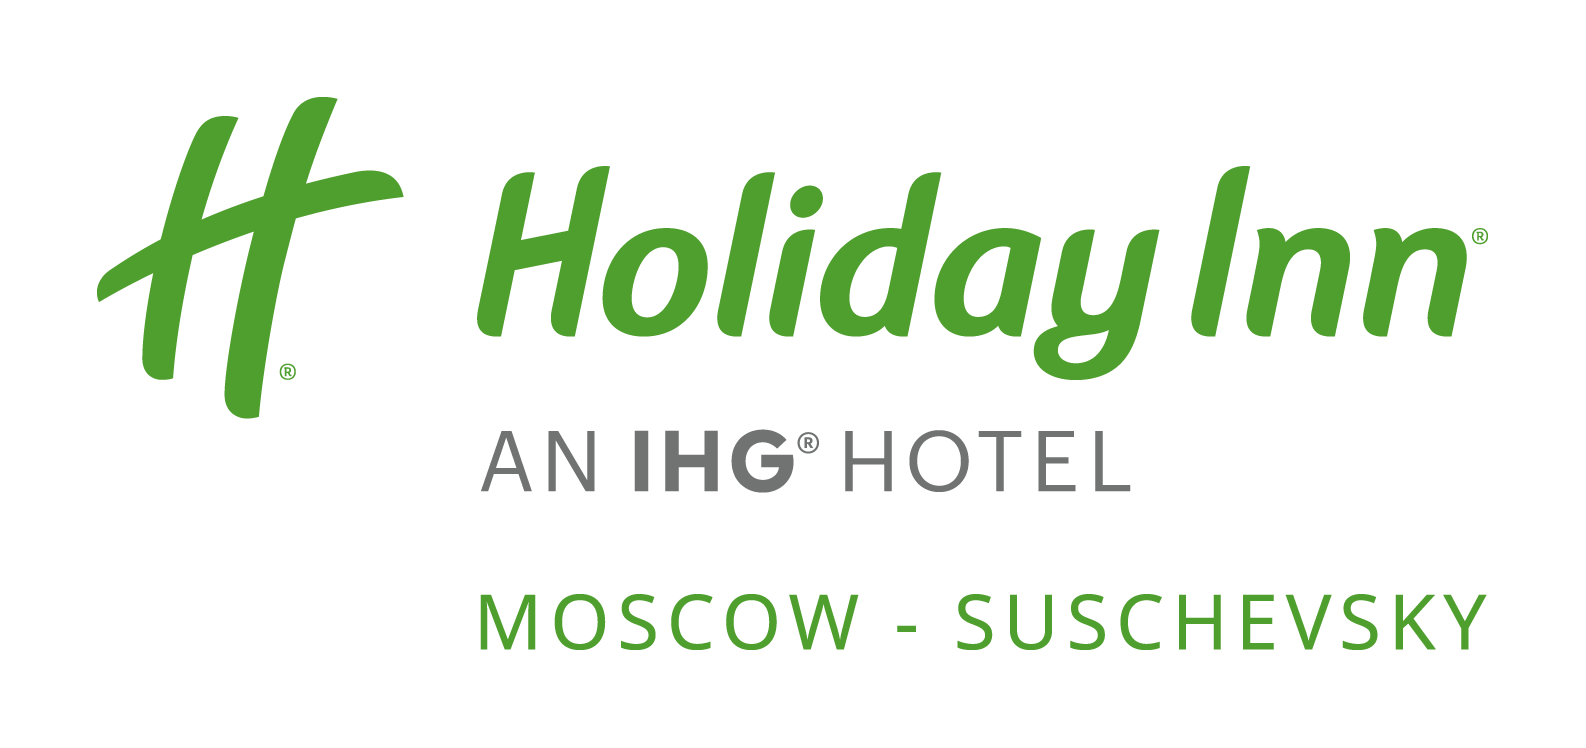 Contact Us - Holiday Inn Moscow Suschevsky Hotel